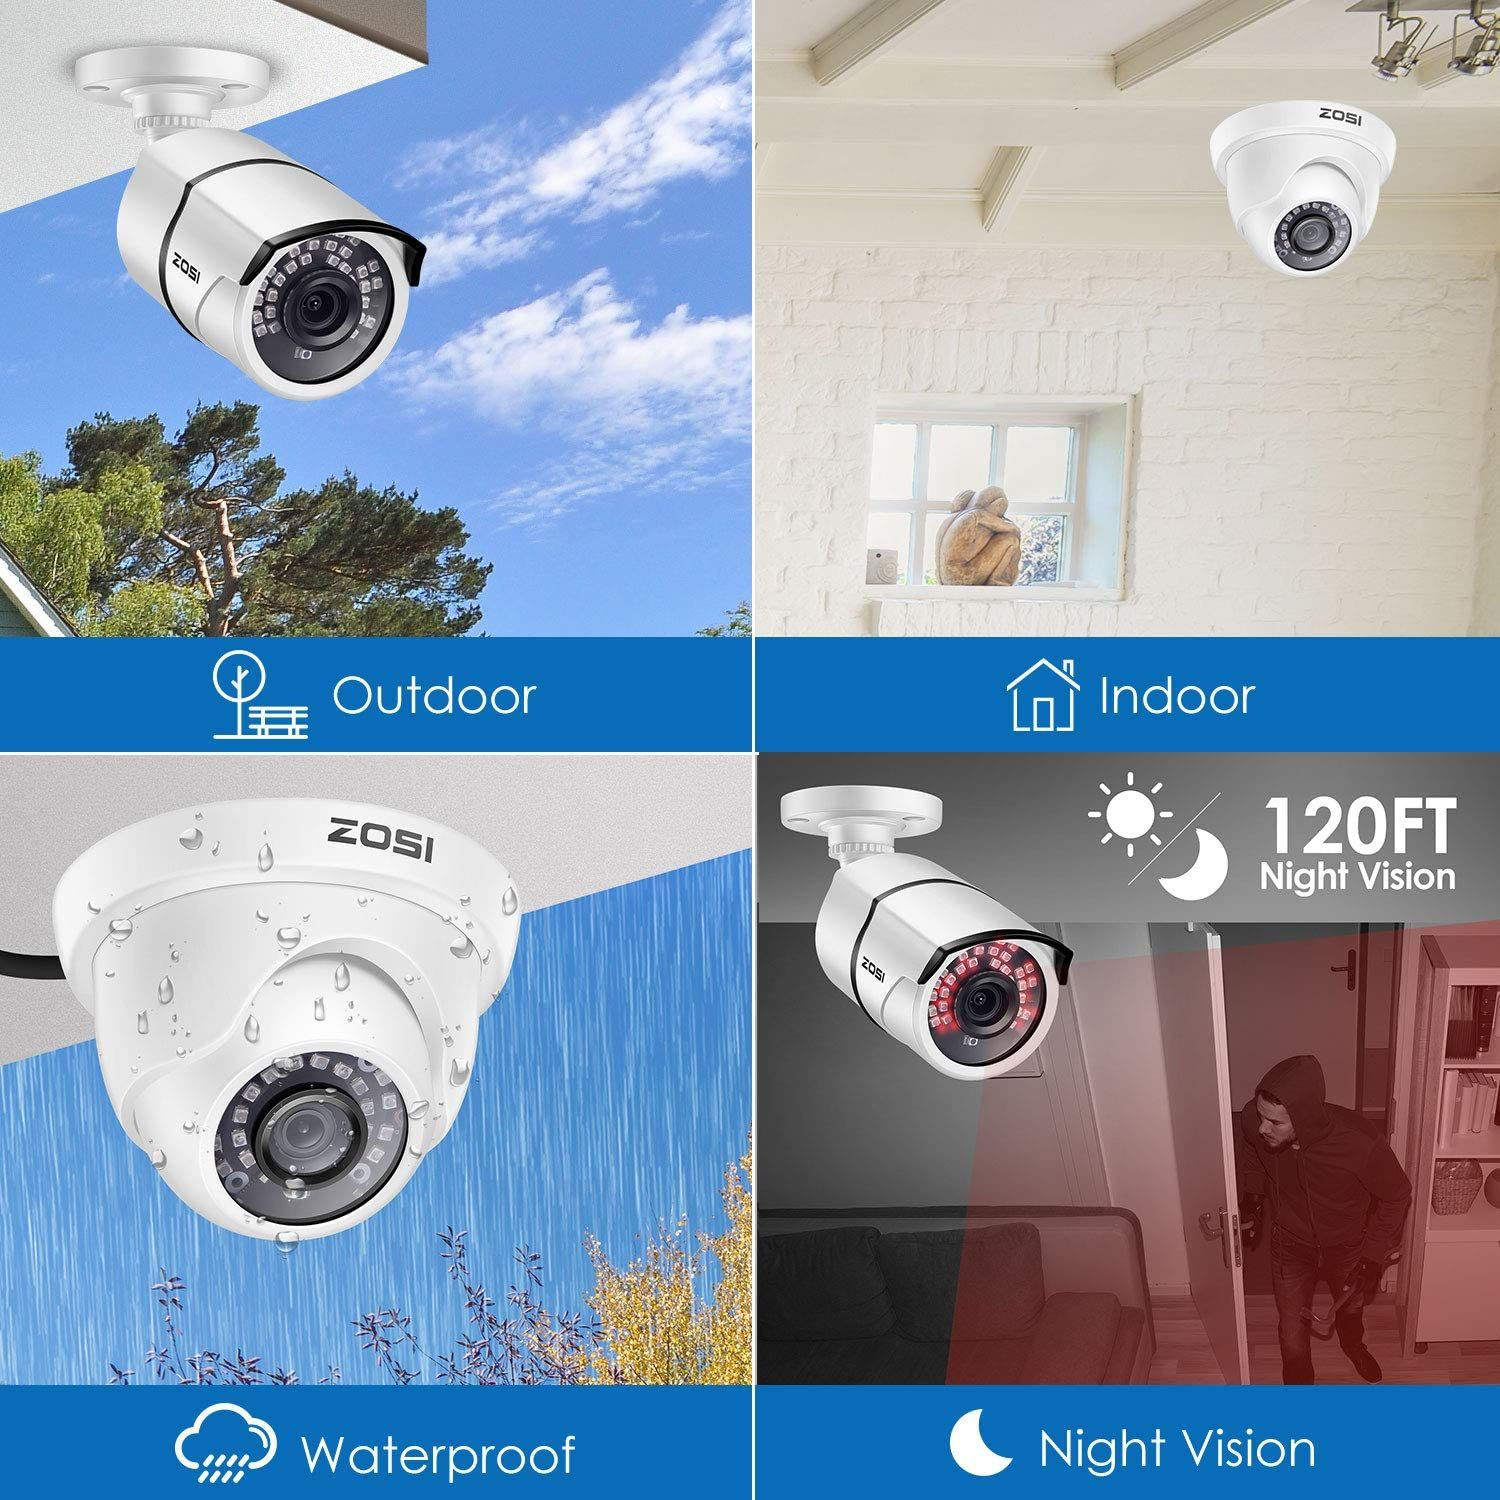 Cctv Camera Without Internet Security Cameras For Home Home Security Camera Systems Security Camera System